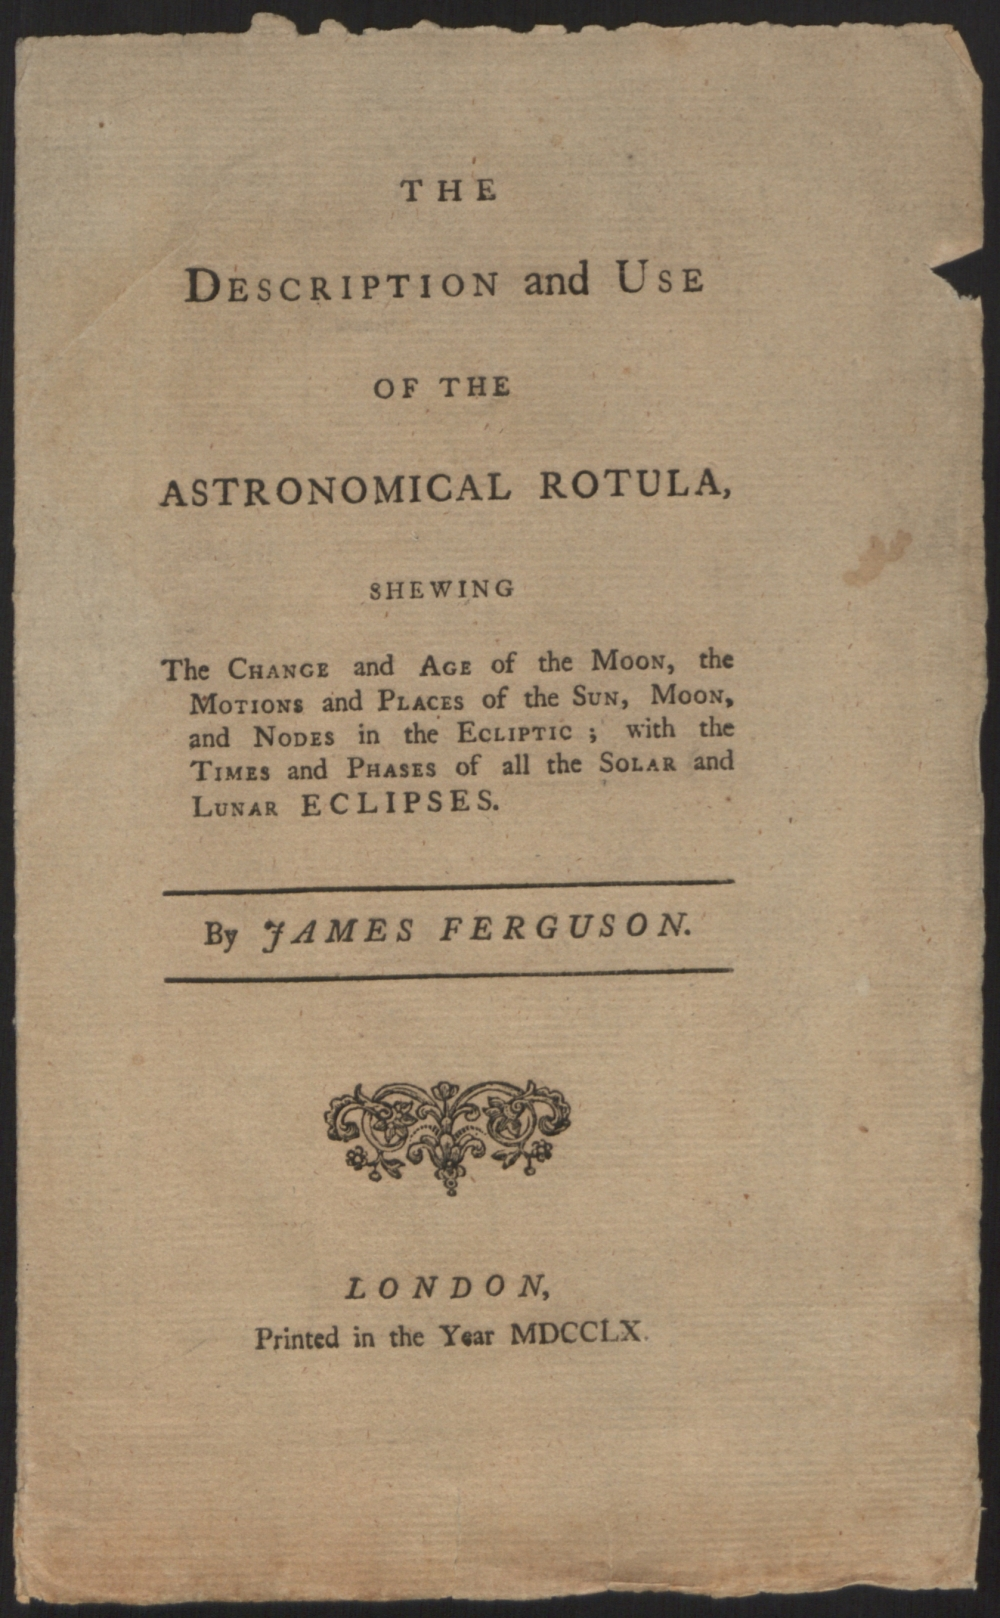 preview image for Pamphlet. The Description and Use of the Astronomical Rotula, shewing the change and age of the Moon, the motions and places of the sun, moon and nodes in ecliptic; with the times and phases of all the Solar and Lunar eclipses. By James Ferguson. London, 1760